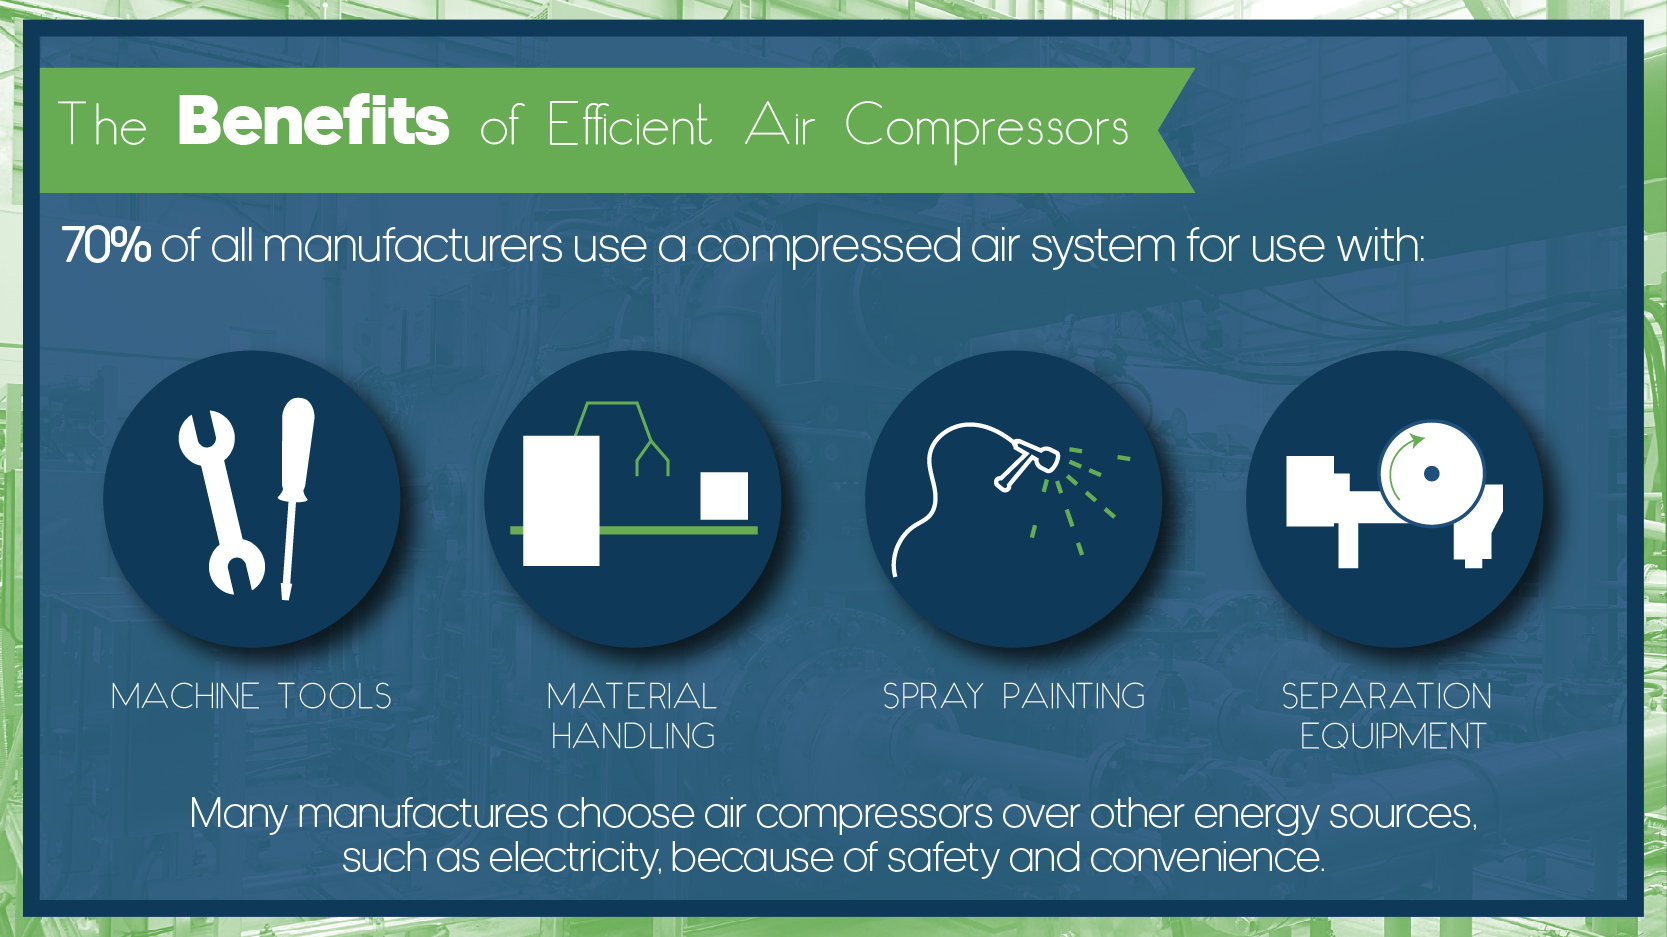 Air Compressor Efficiency Benefits Of Compressors General Electric Wiring Diagram An Can Also Function At High Temperatures And In Locations Where Explosions Fire Hazards Restrict Other Forms Energy